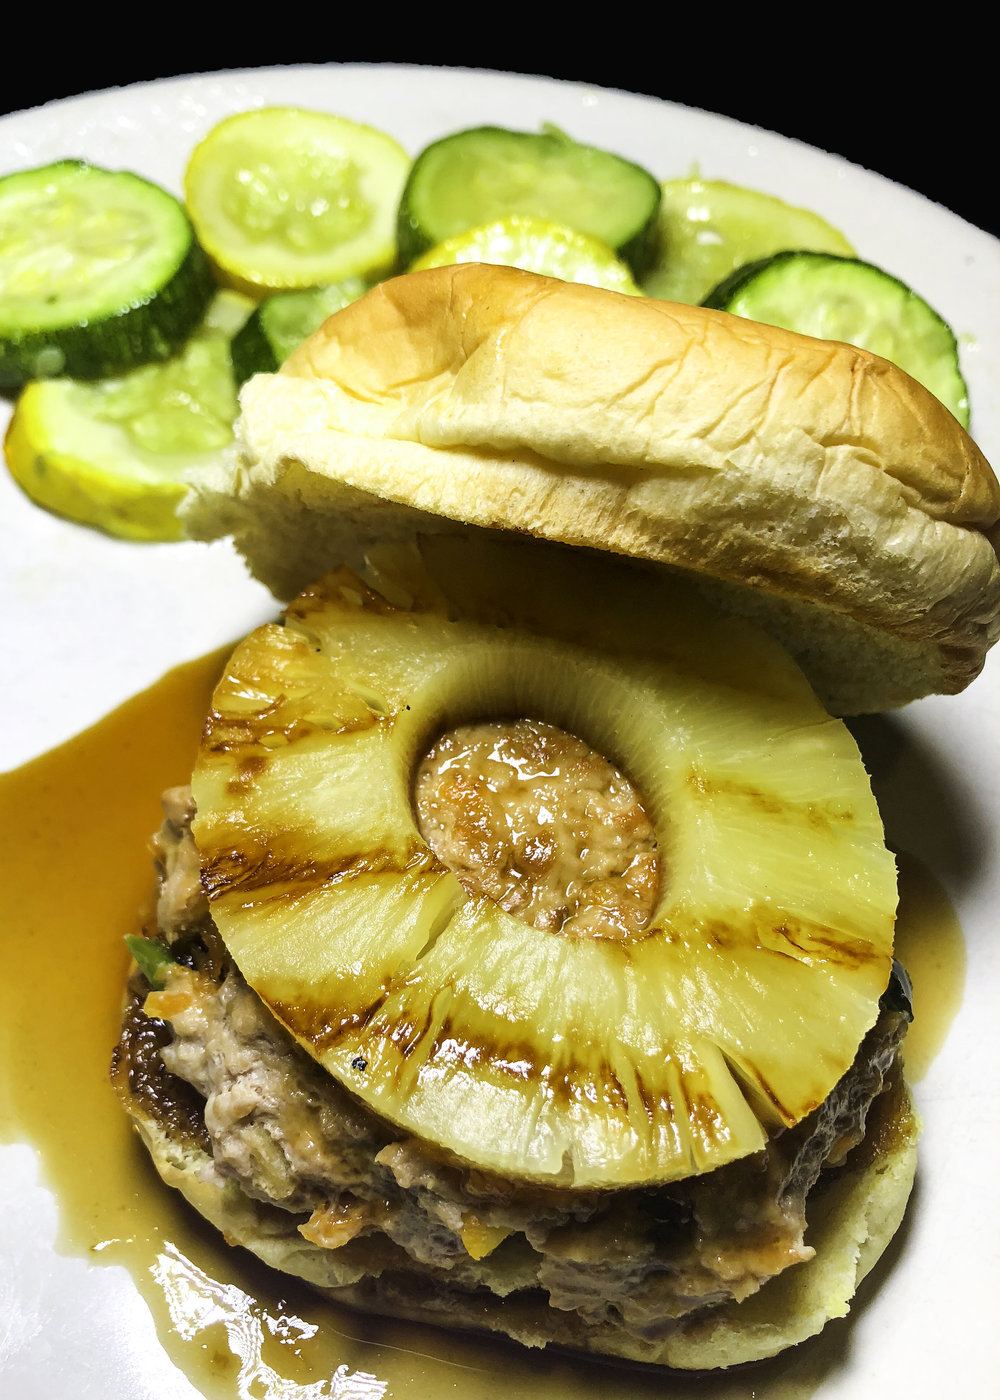 teriyaki turkey burger 2.jpg